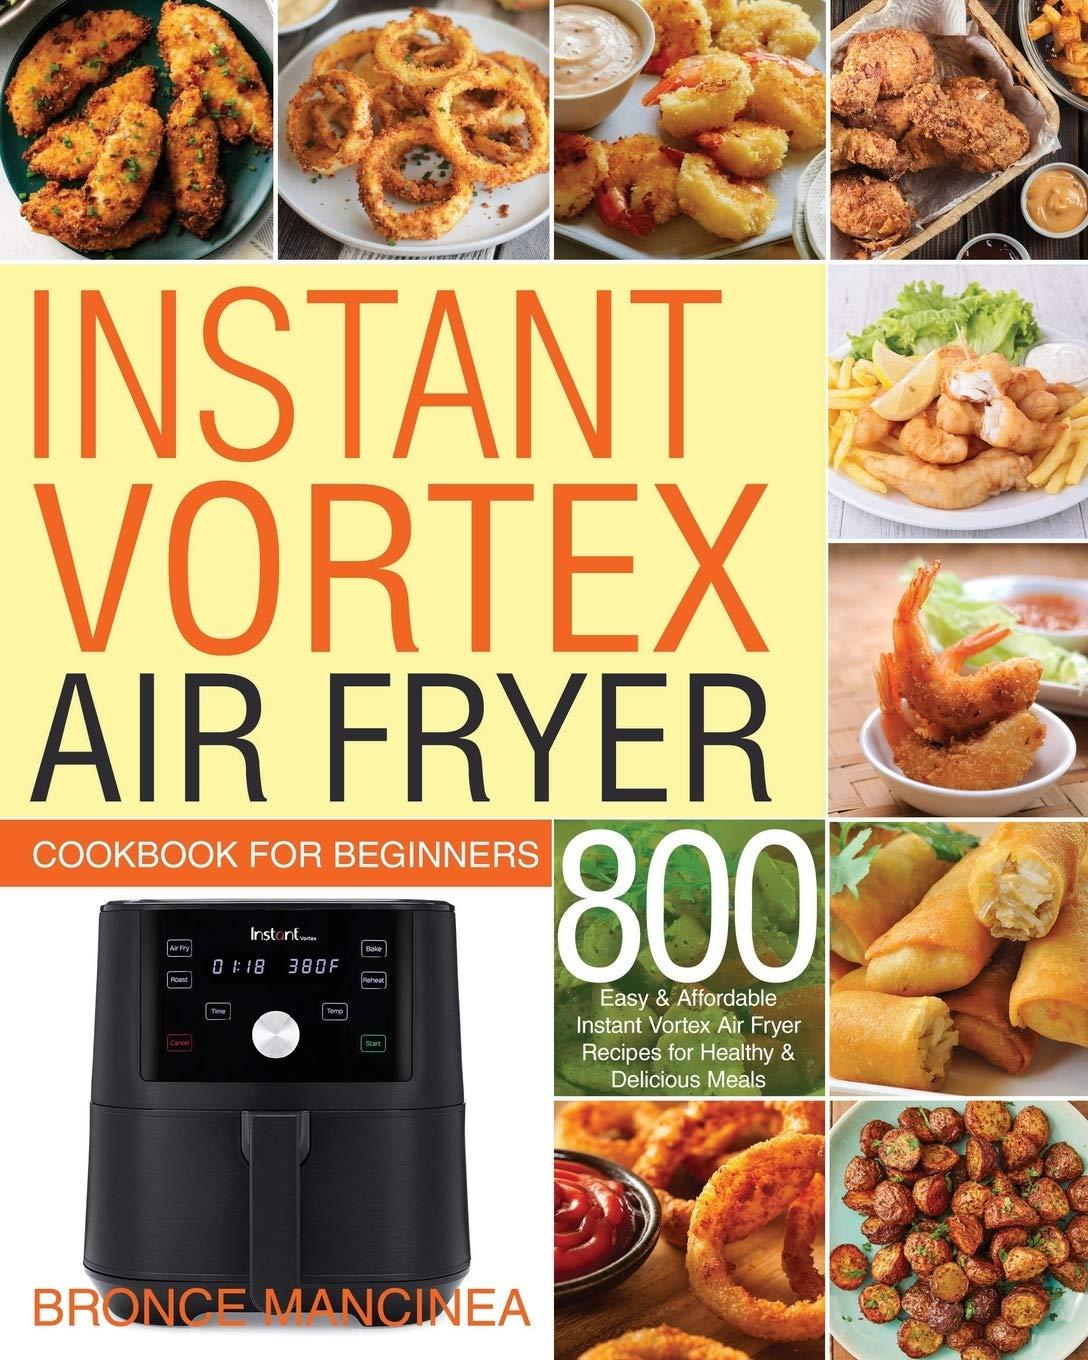 Instant Vortex Air Fryer Cookbook for Beginners: 800 Easy & Affordable Instant Vortex Air Fryer Recipes for Healthy & Delicious Meals 1